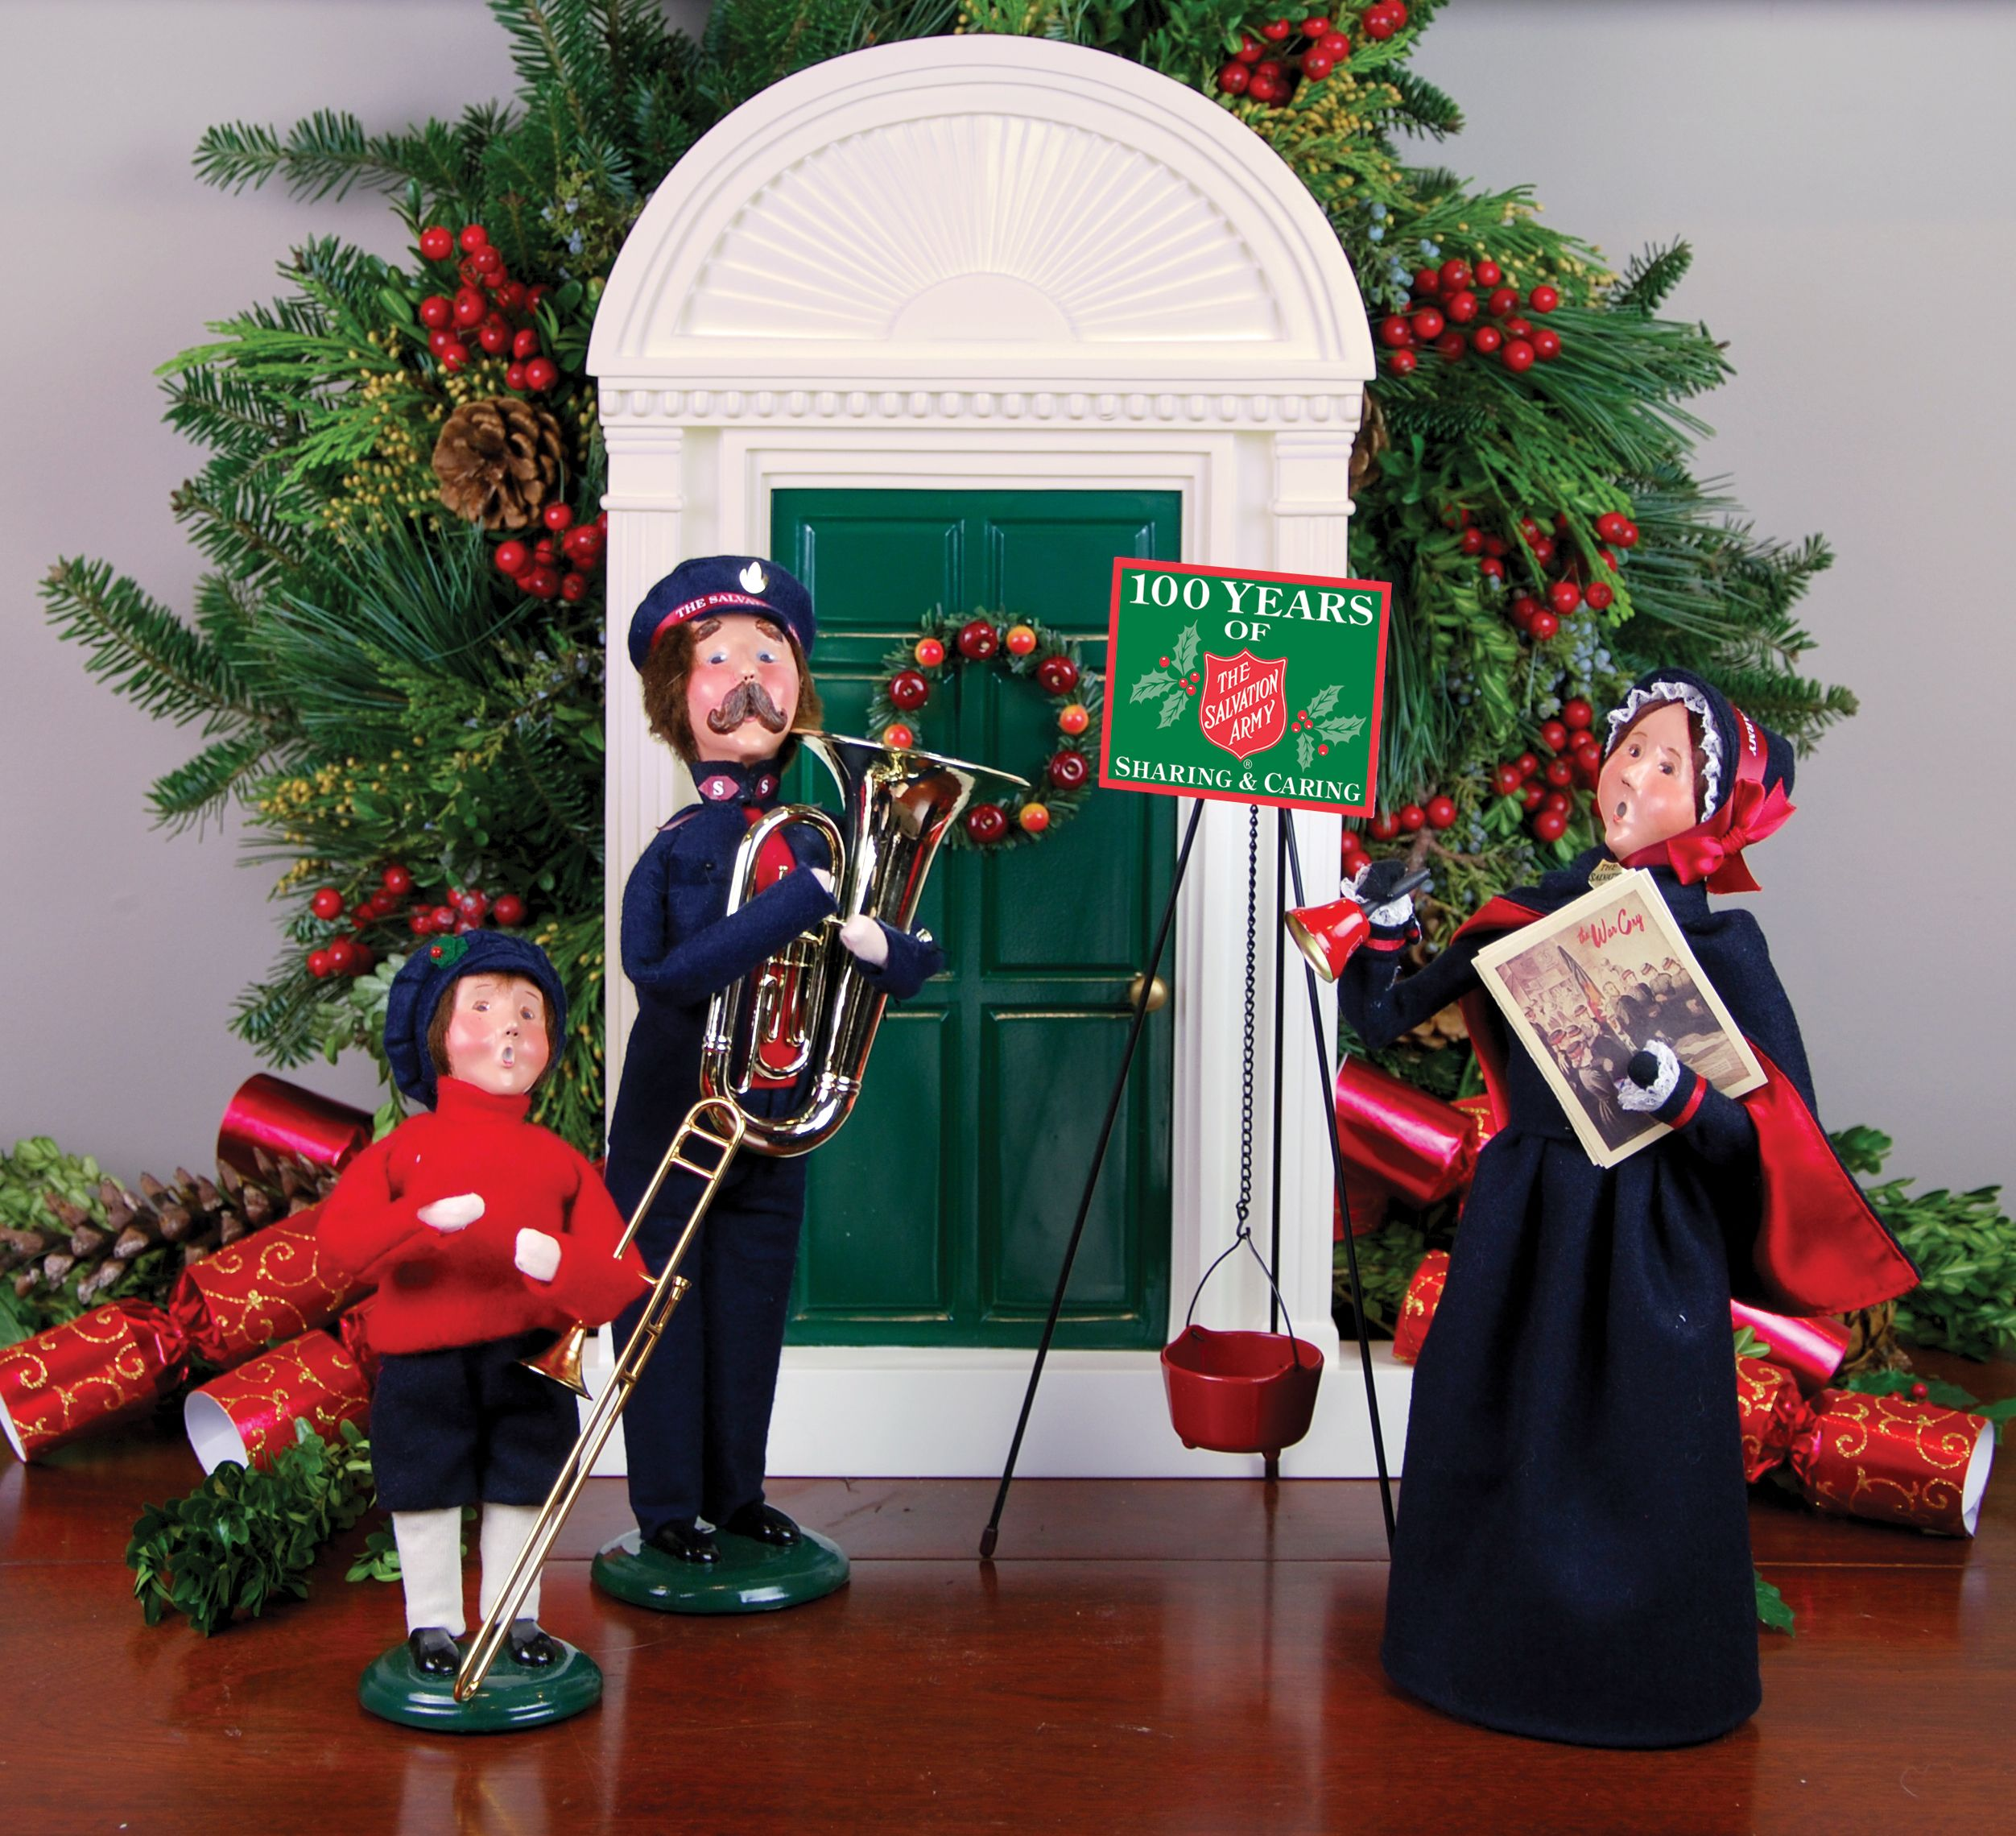 Salvation Army Gifts For Christmas: Byers' Choice Carolers — Salvation Army Series